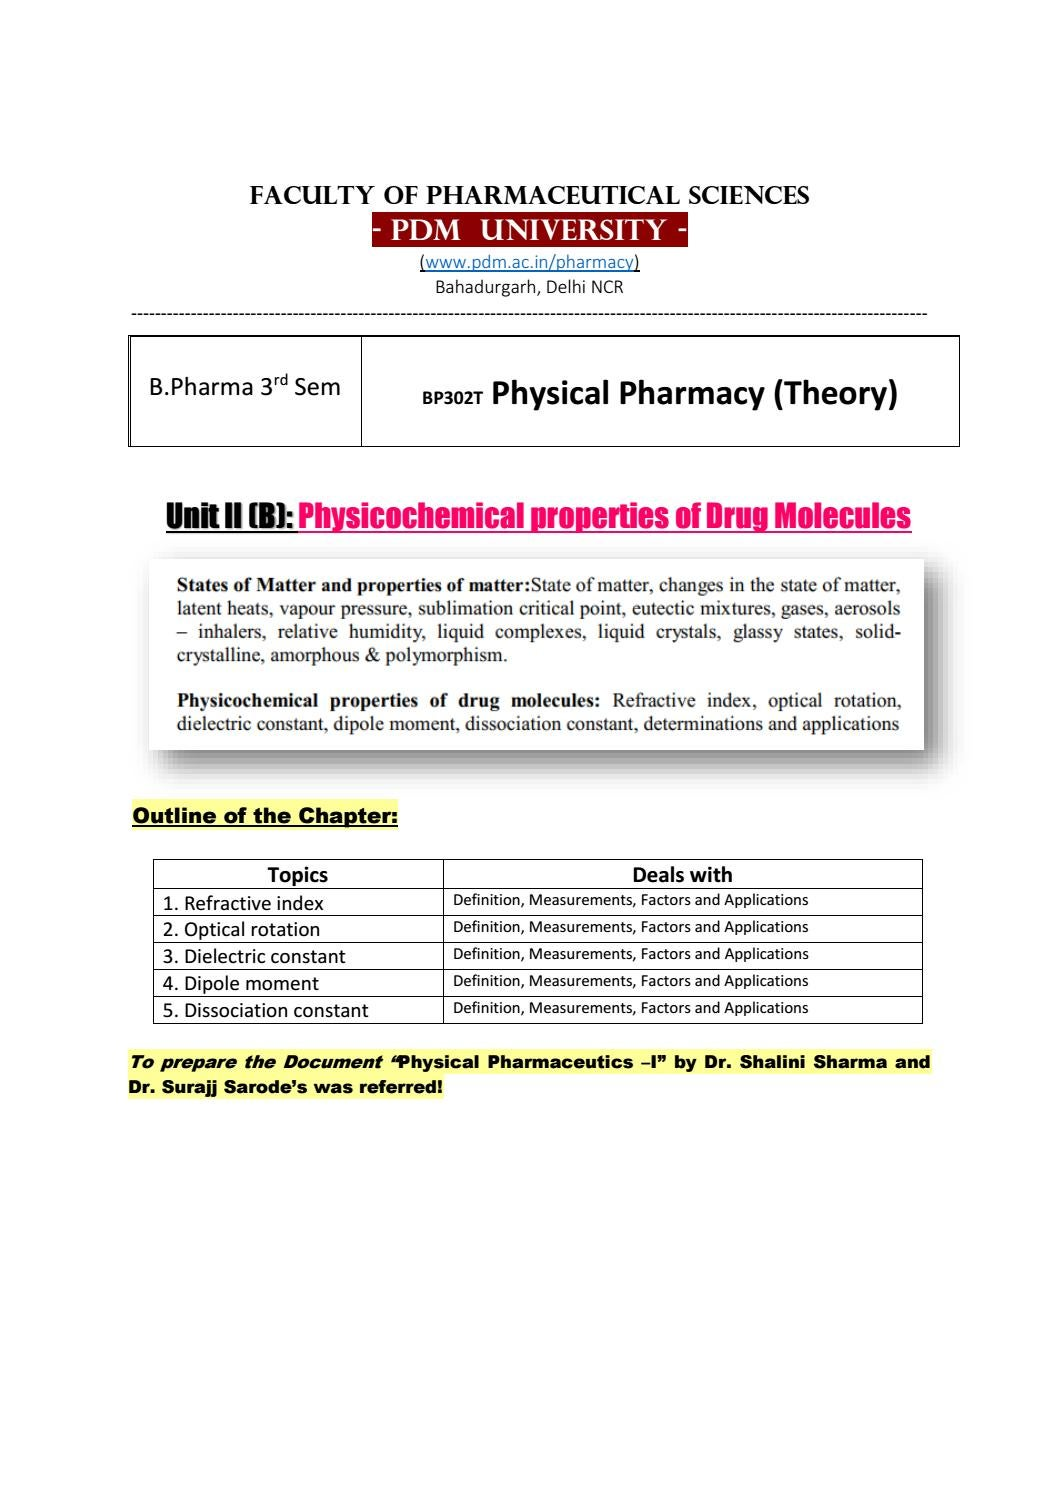 Download pharmacy textbook cvs subrahmanyam by physical of